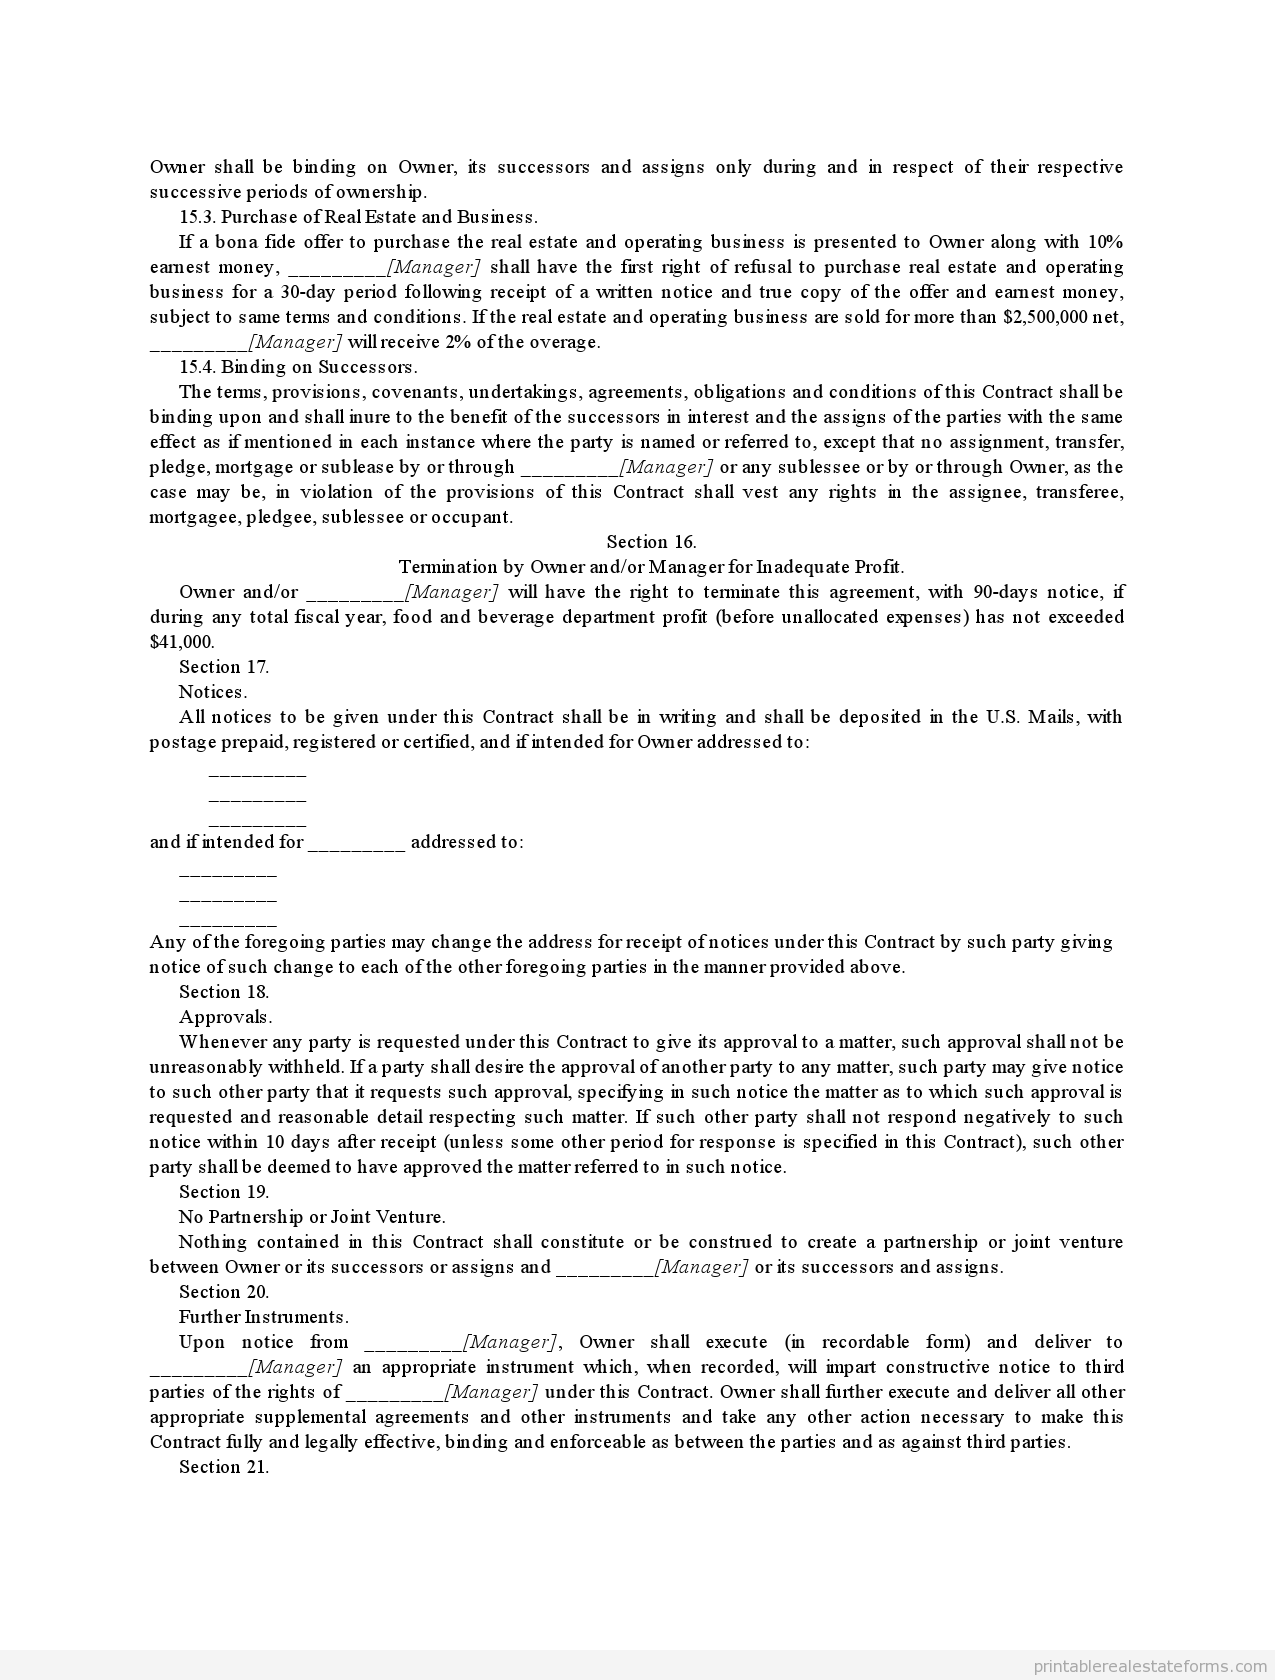 Printable management contract for major hotel with incentive ...